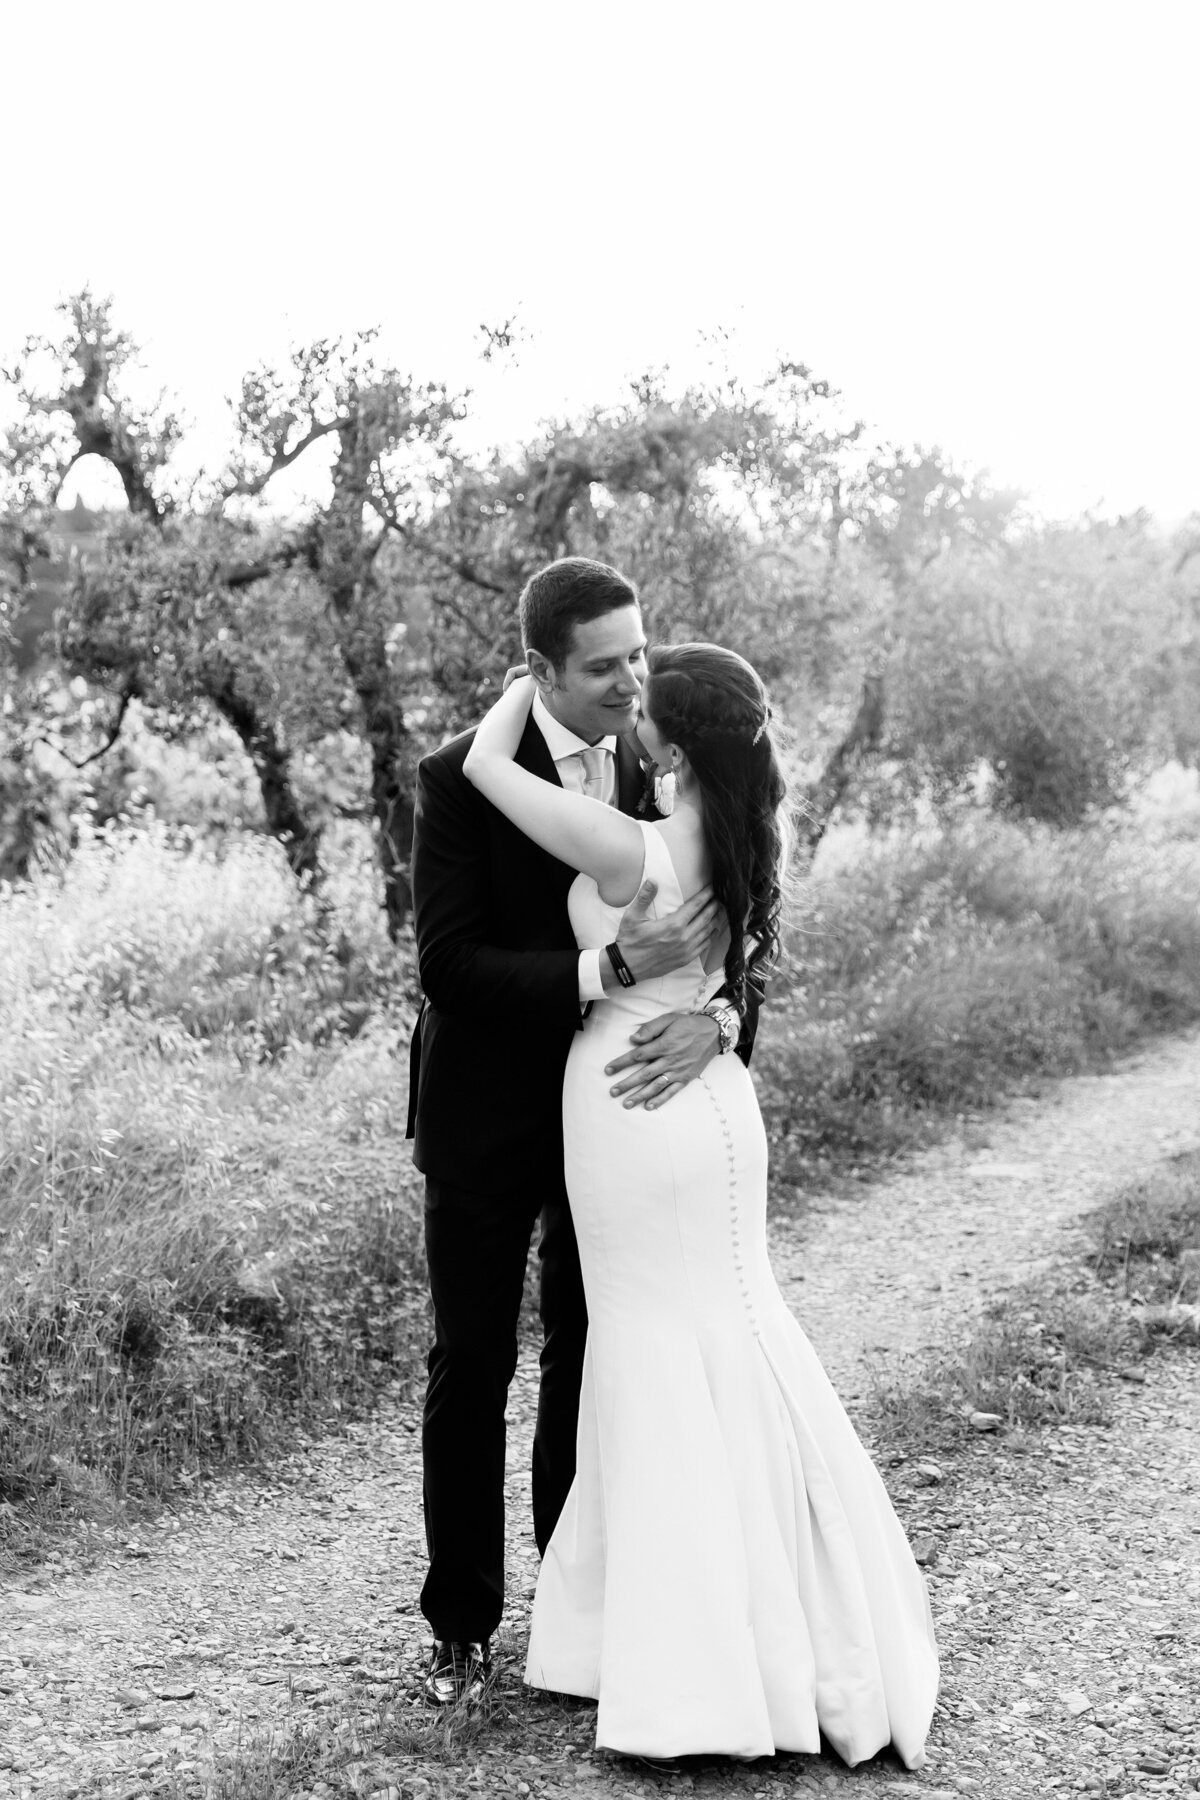 Tuscany_Italy_0280_Helga_Marc_Wedding_2963